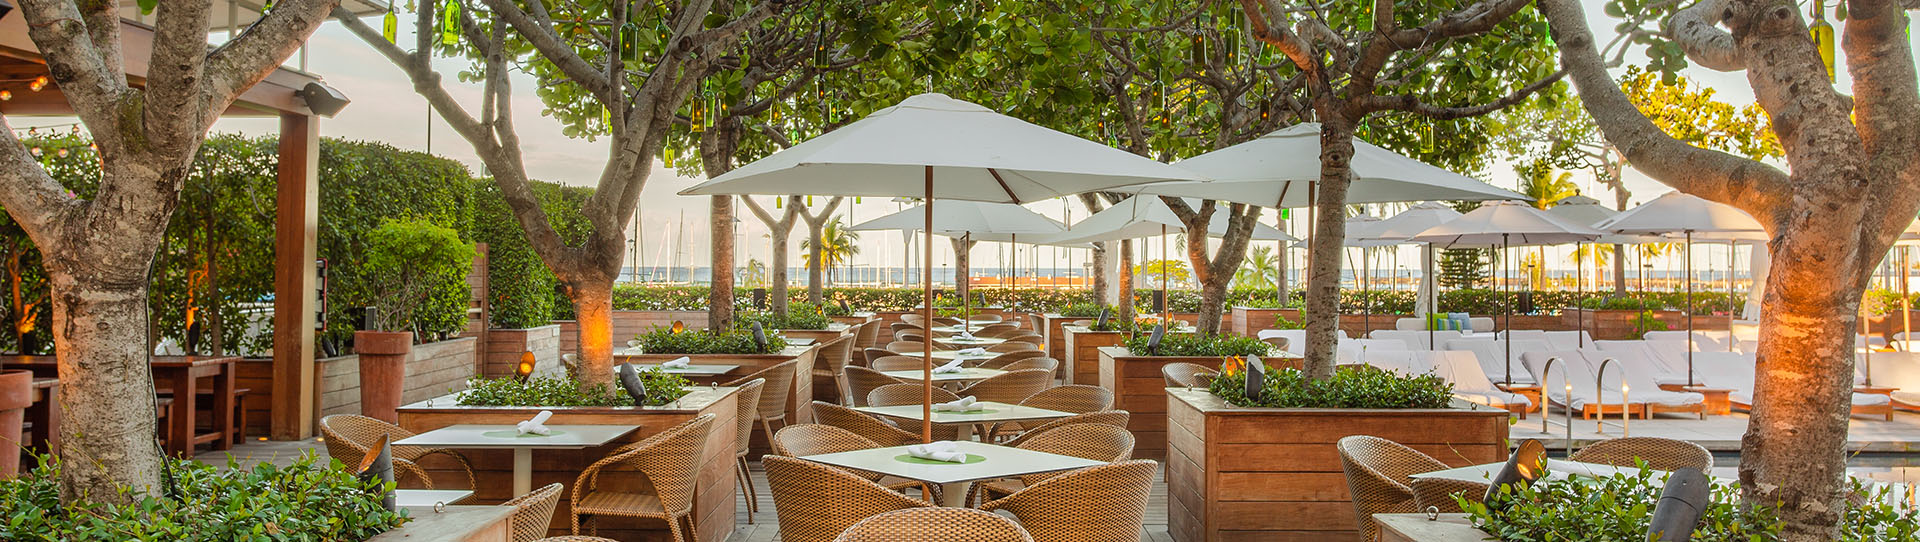 The Grove Restaurant offers a row of outdoor dining tables and chairs overlook the Waikiki Beach Marina